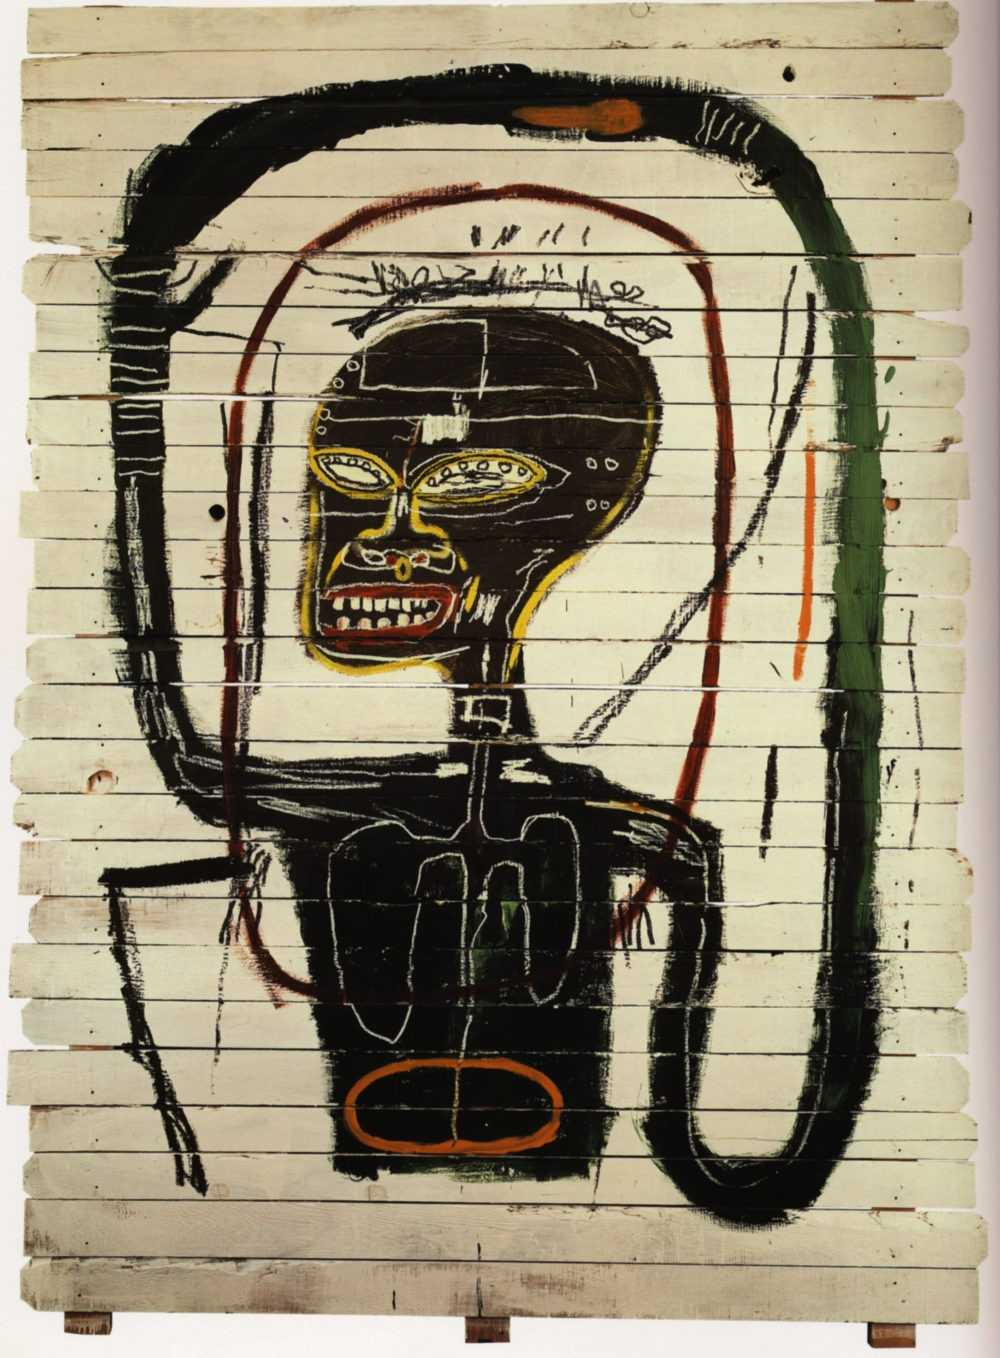 Jean-Michel Basquiat, Flexible (1984)